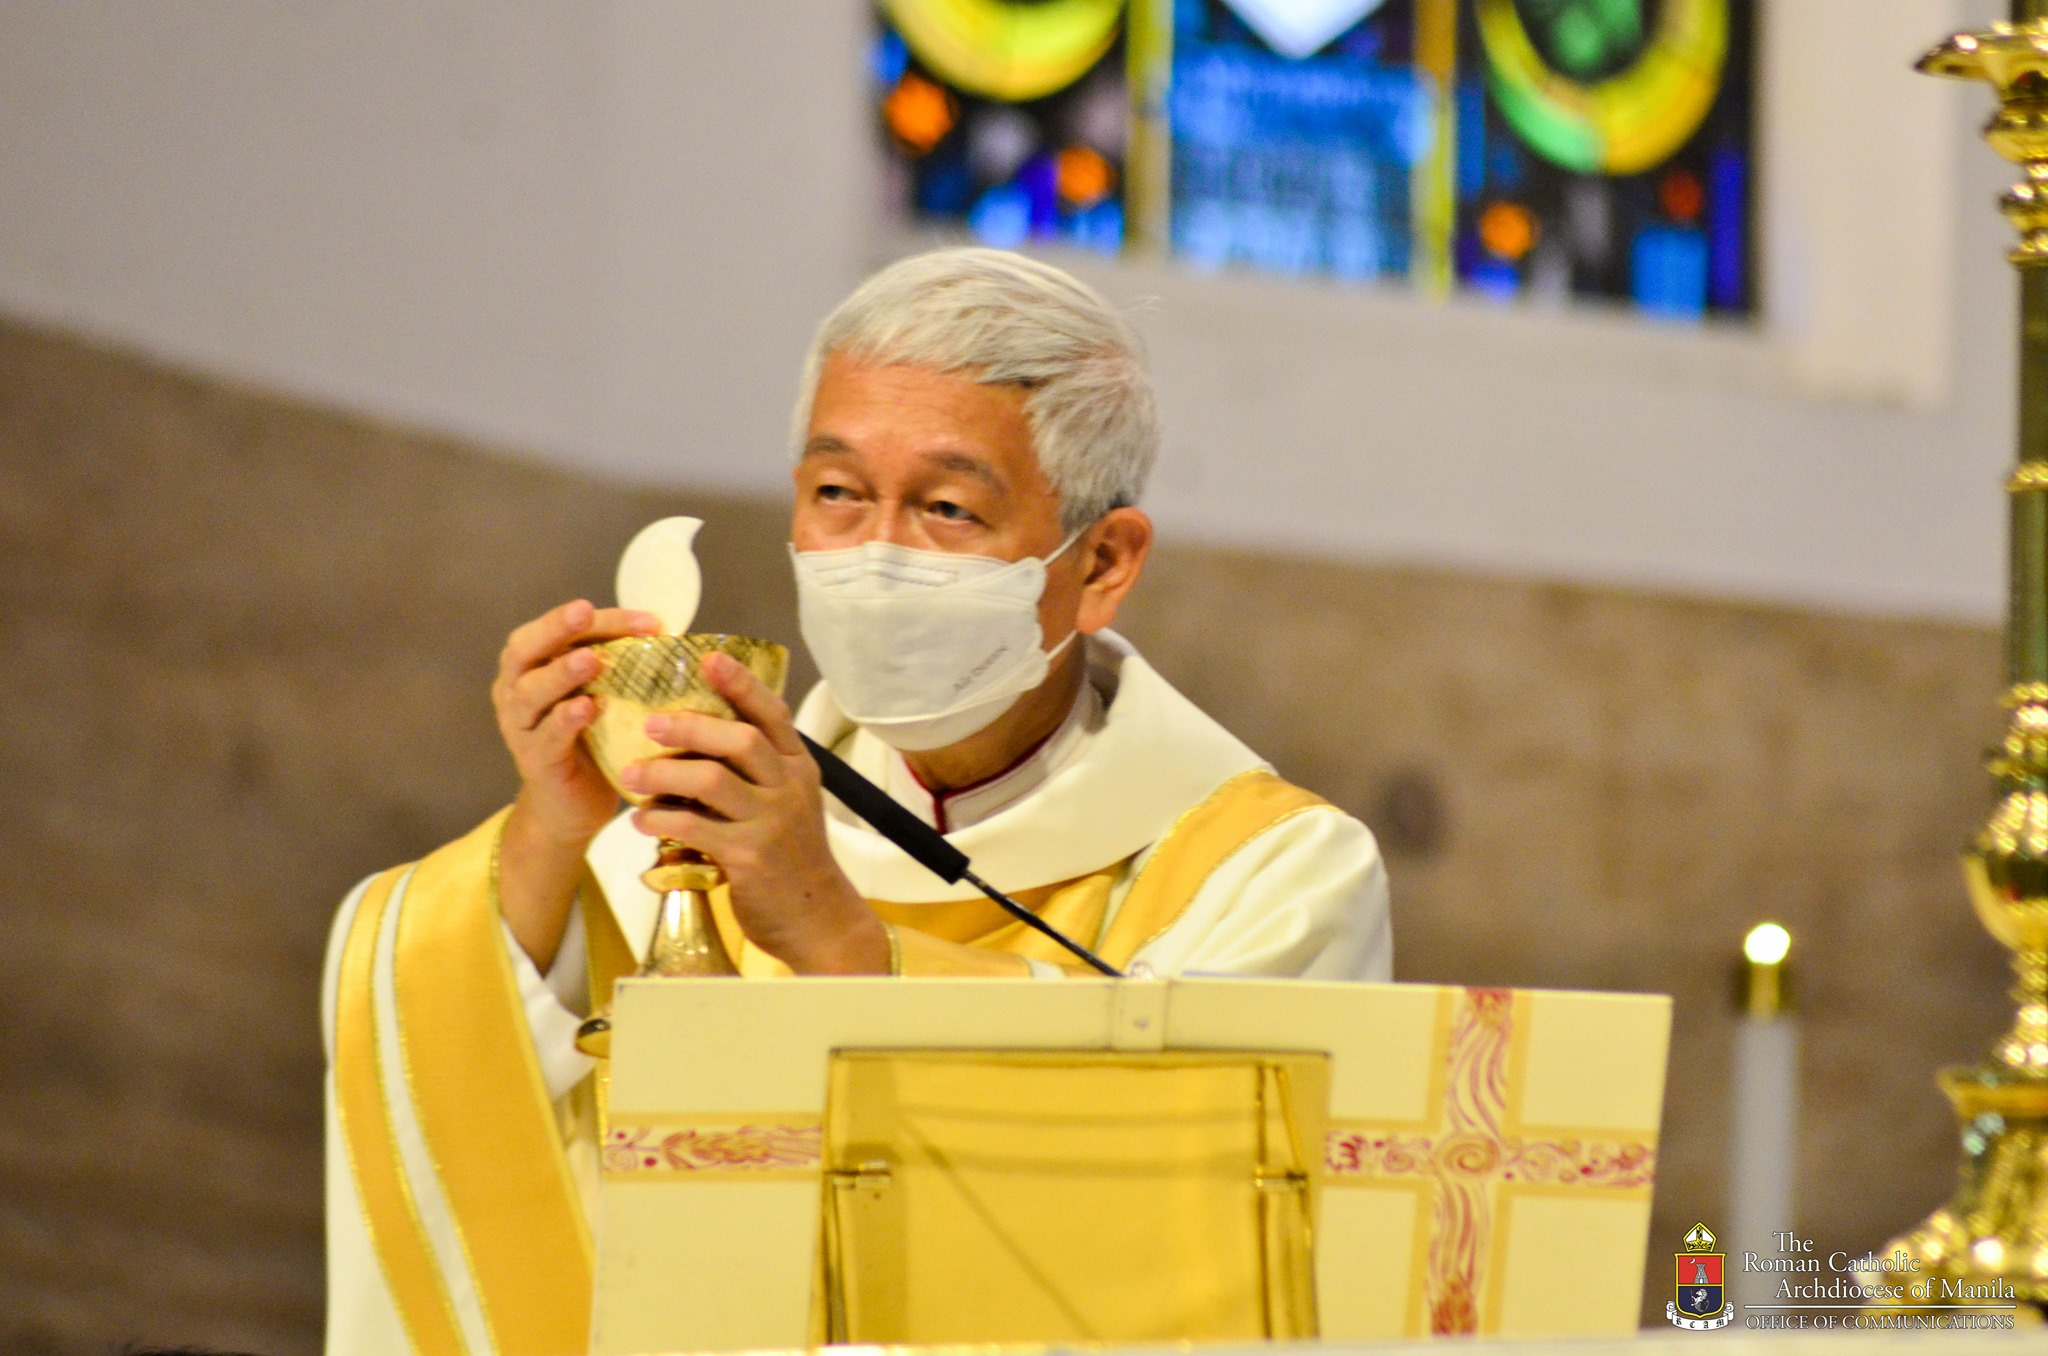 FULL TEXT | Homily of Bishop Broderick Pabillo during Ordination on March 19, 2021